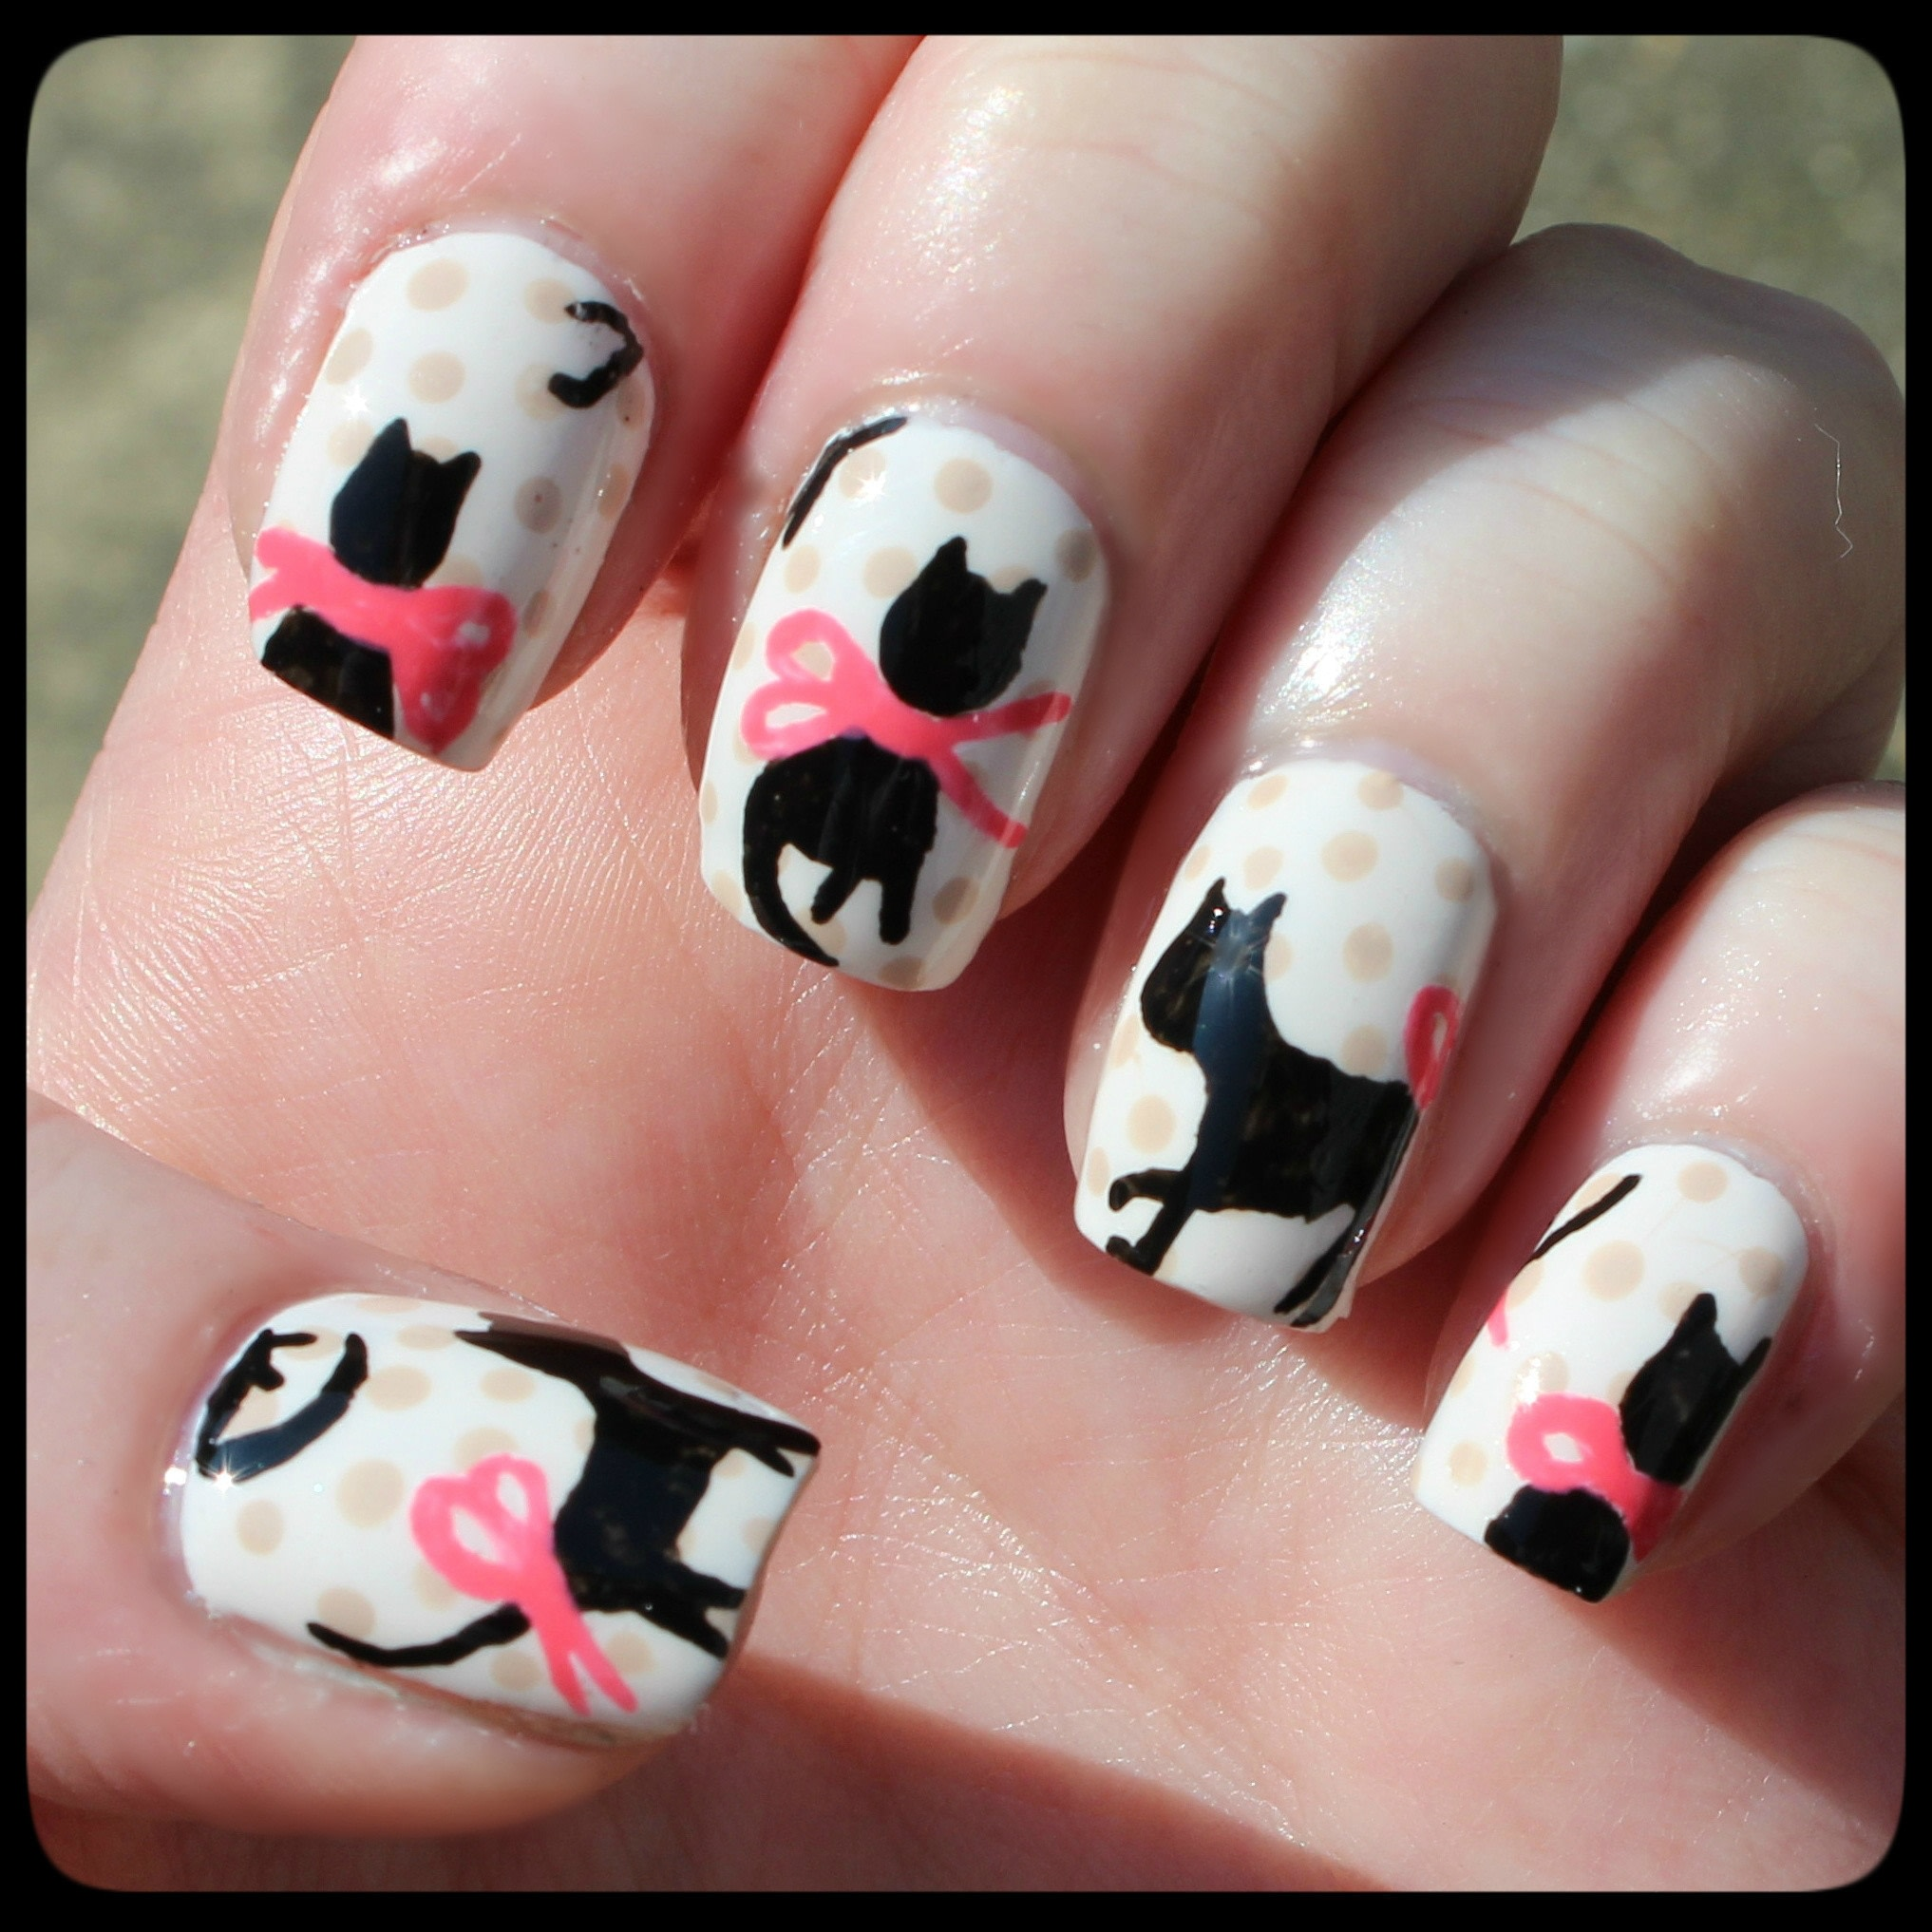 Cat Blouse Nail Art · How To Paint An Animal Nail · Beauty